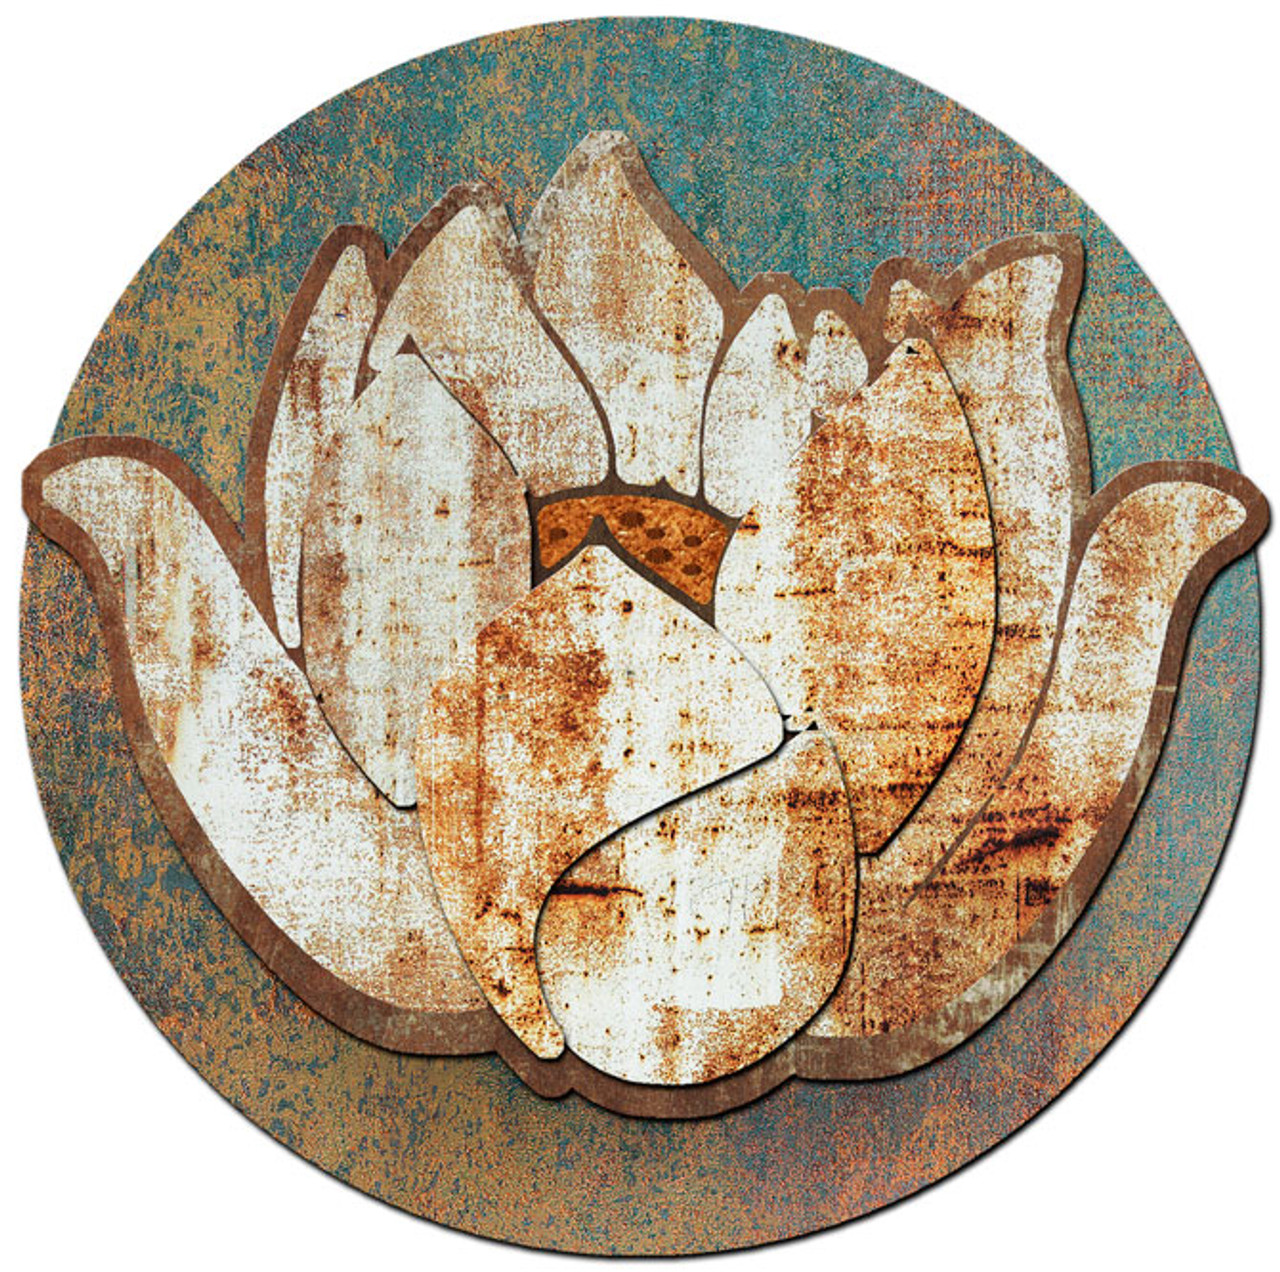 Lotus Flower Rusted Metal Metal Sign 37 x 35 Inches